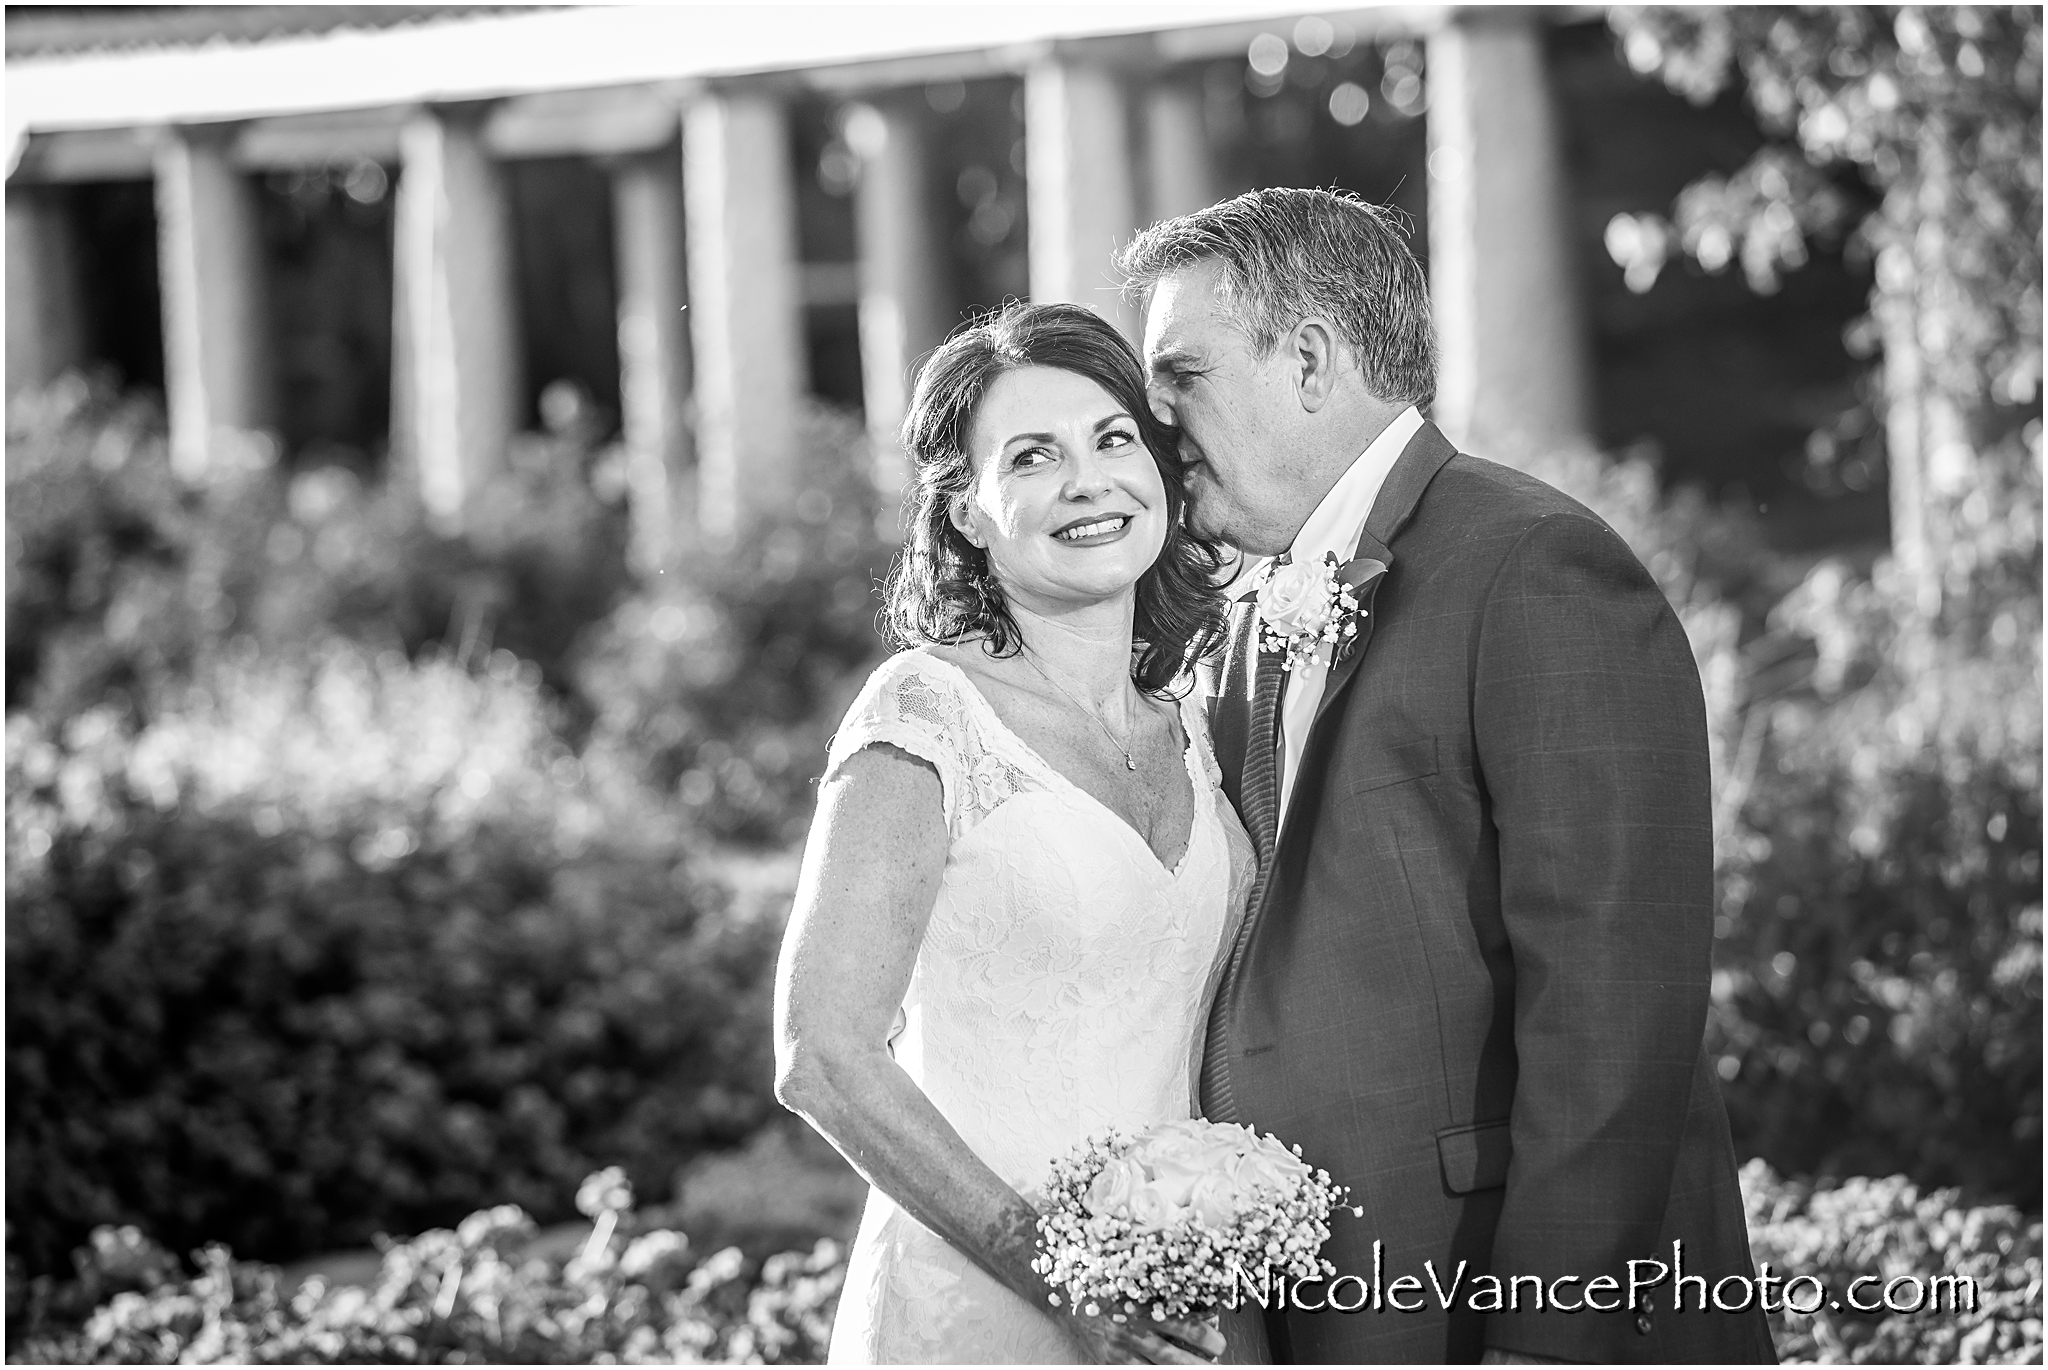 Just married at Maymont Park in Richmond Virginia.